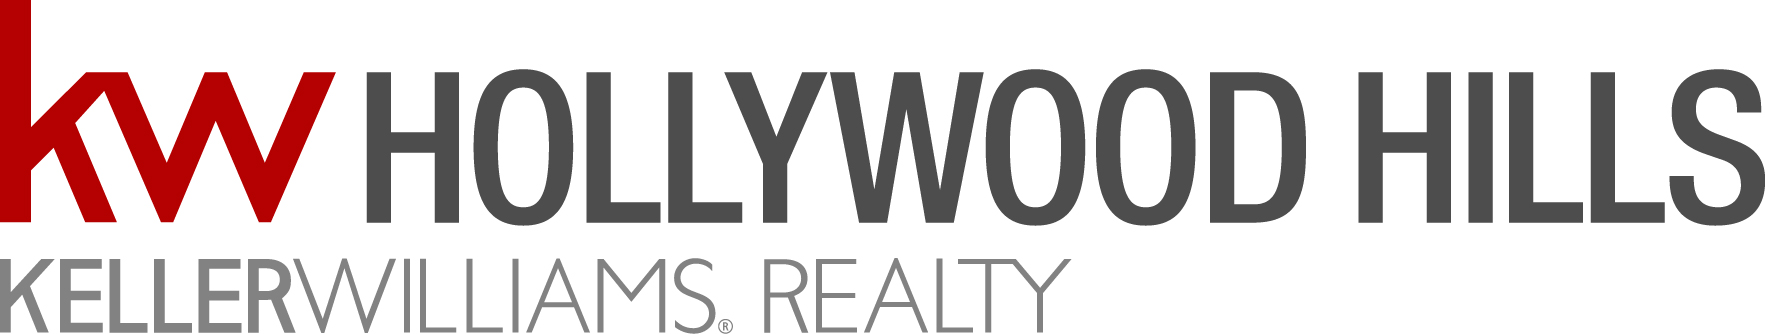 Keller Williams Realty Hollywood Hills